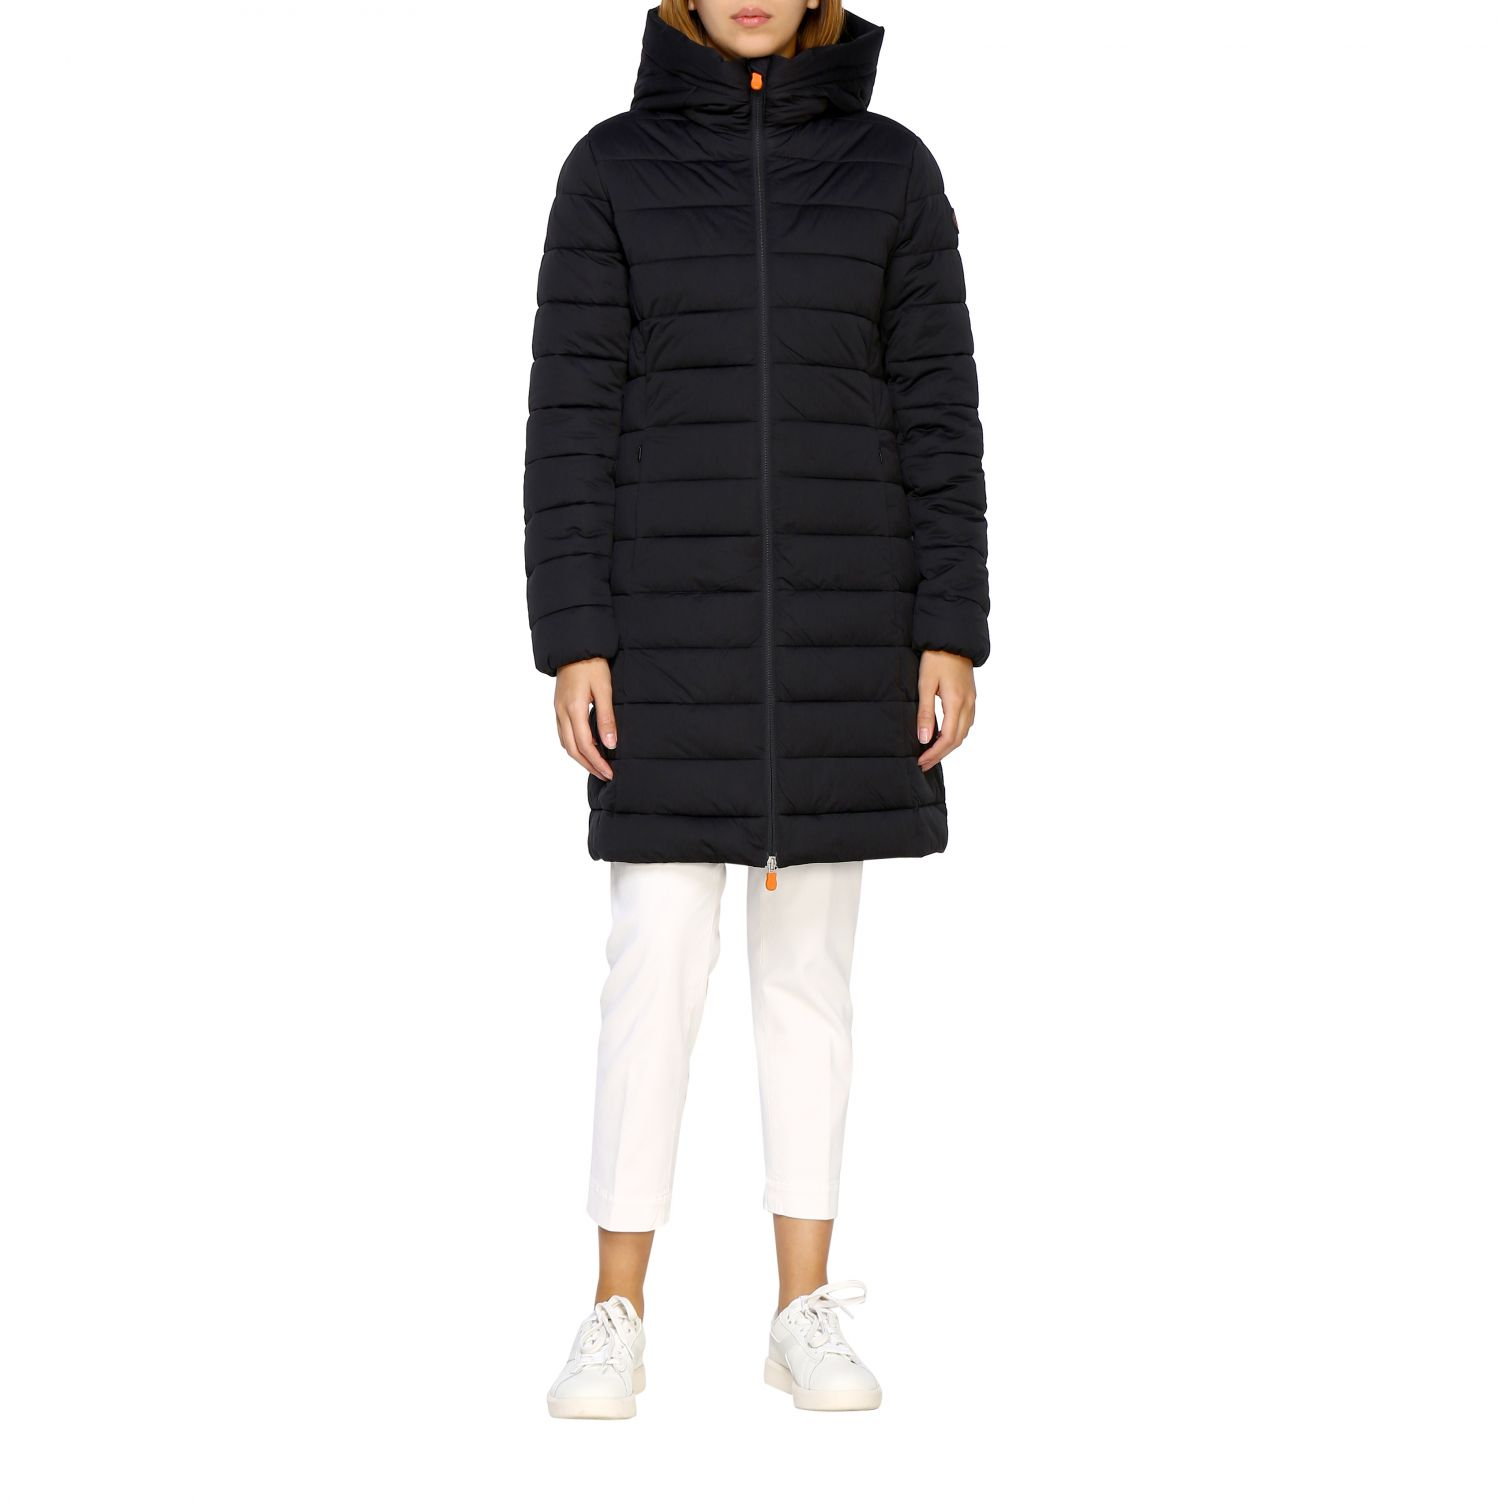 Chaqueta Save The Duck: Chaqueta mujer Save The Duck negro 1